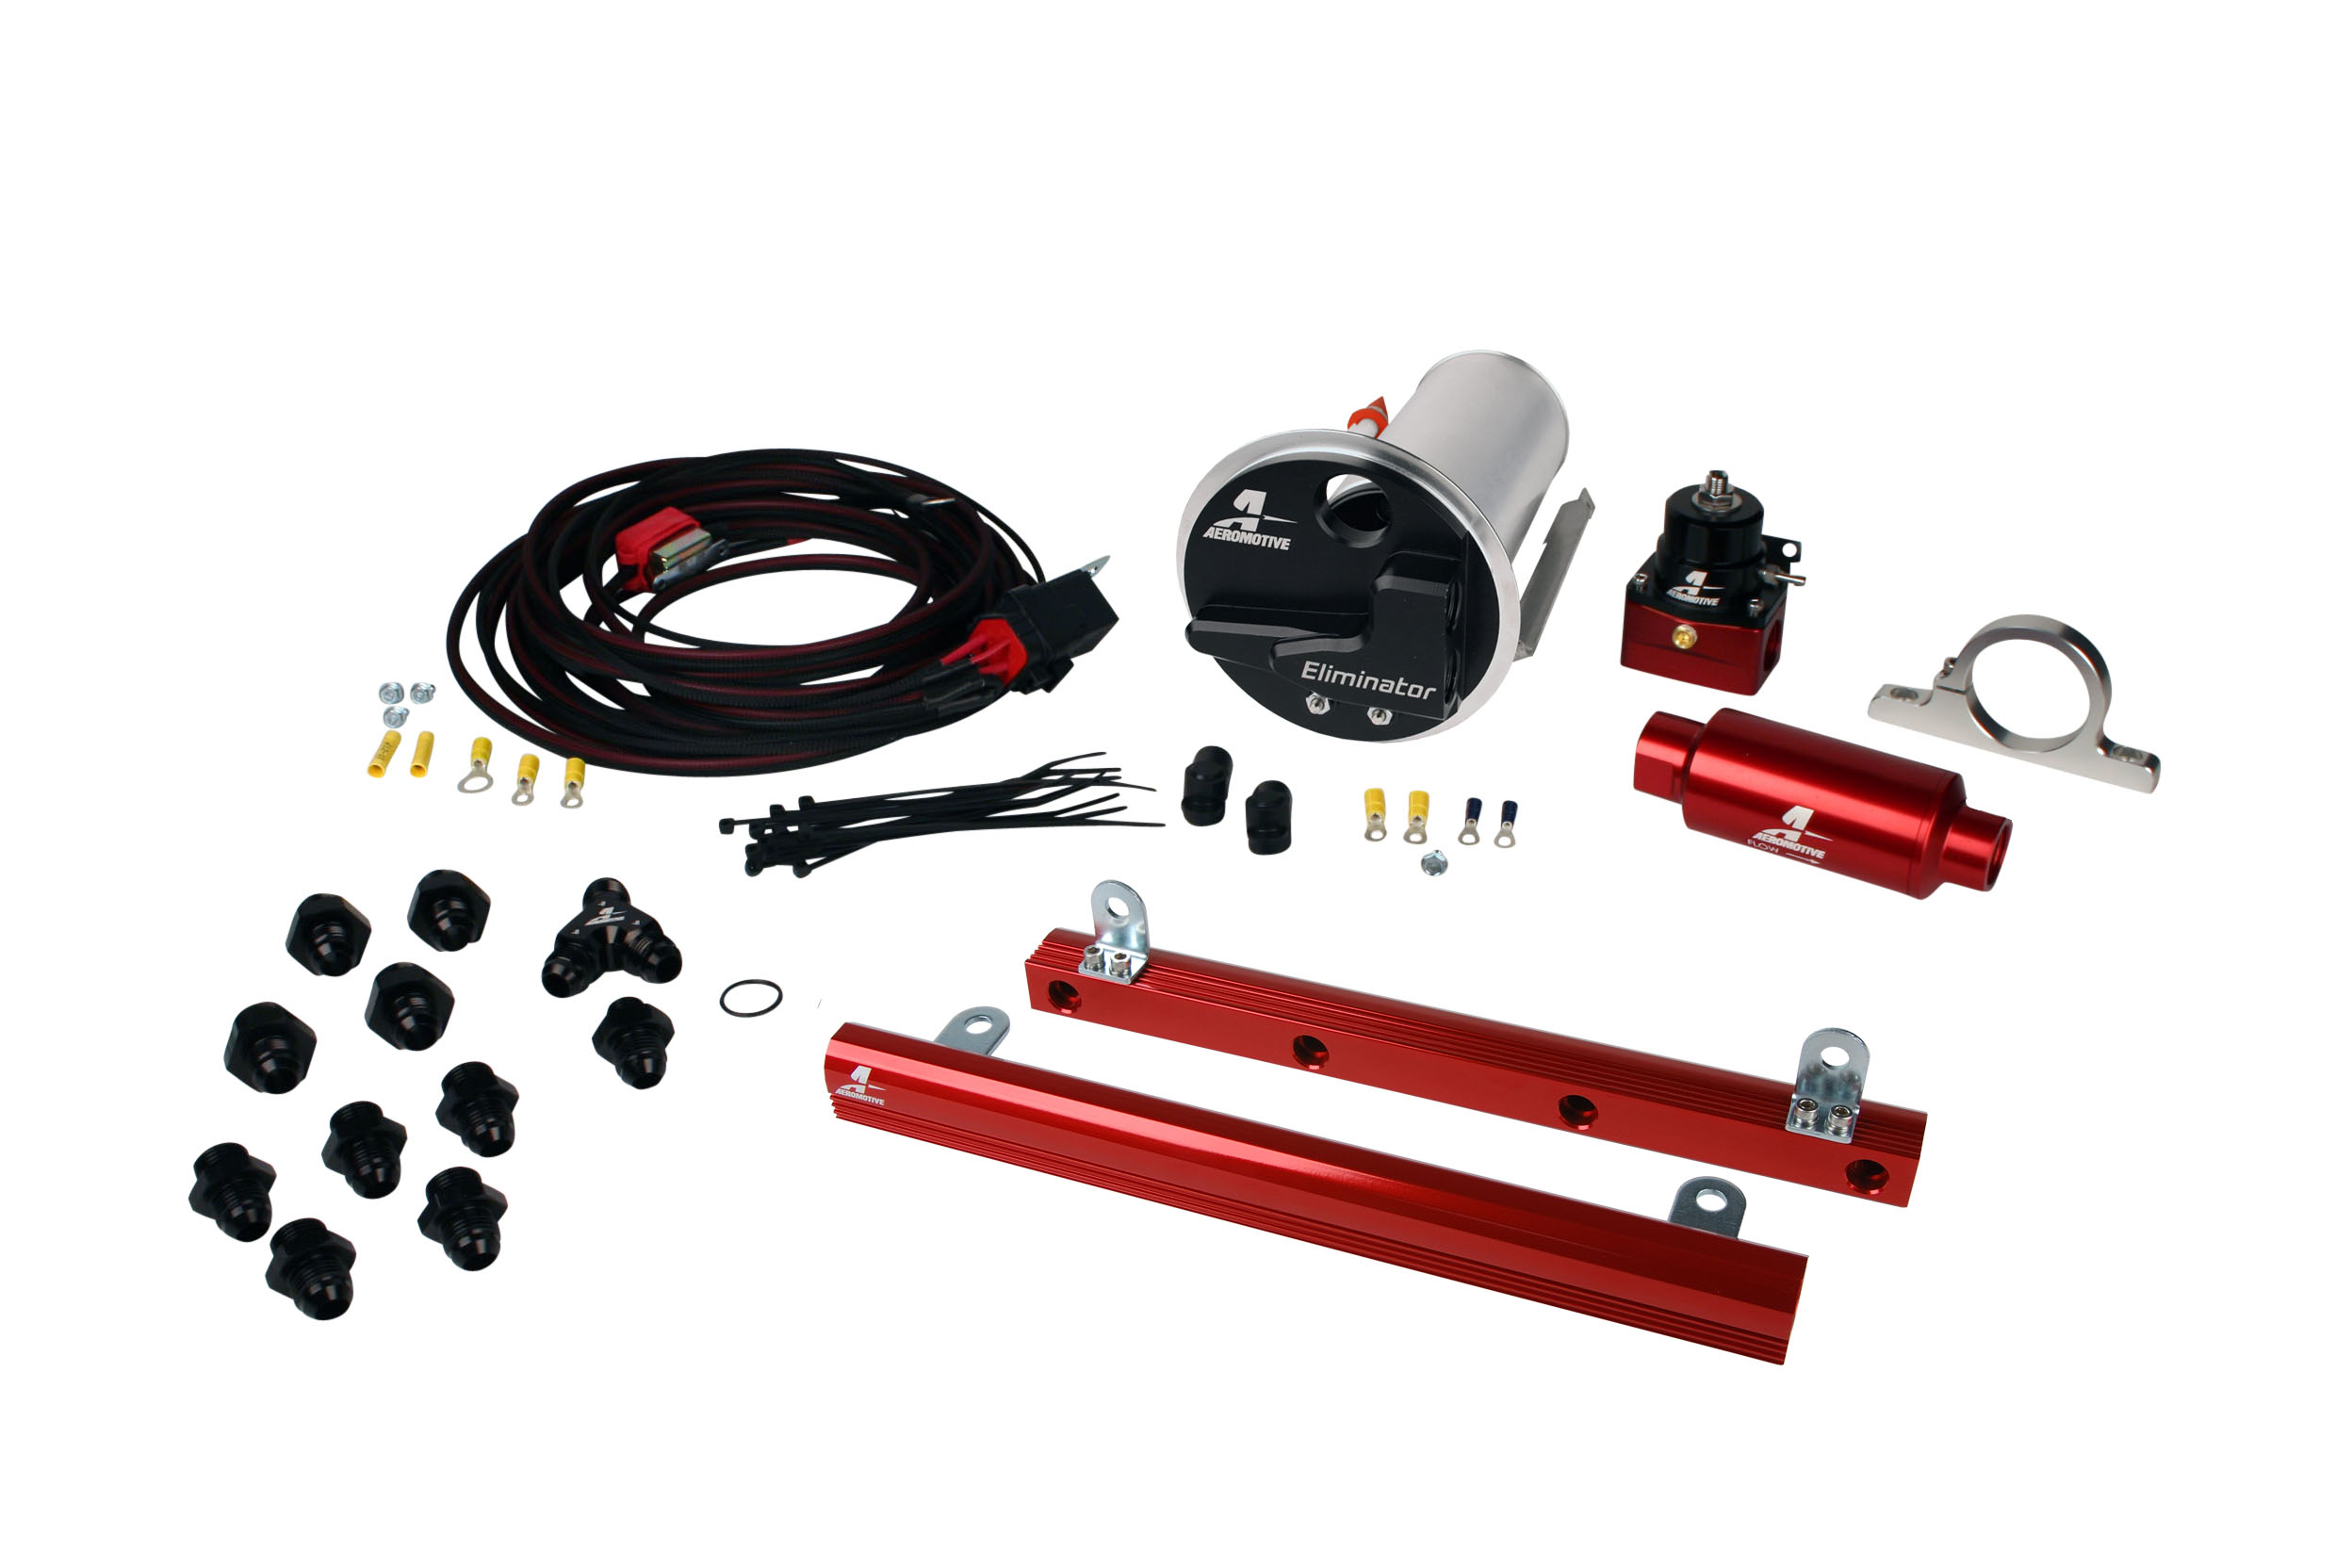 2007-2012 Ford Mustang Shelby GT500 Aeromotive Stealth Eliminator Race Fuel System w/5.4L 4-V Fuel Rails